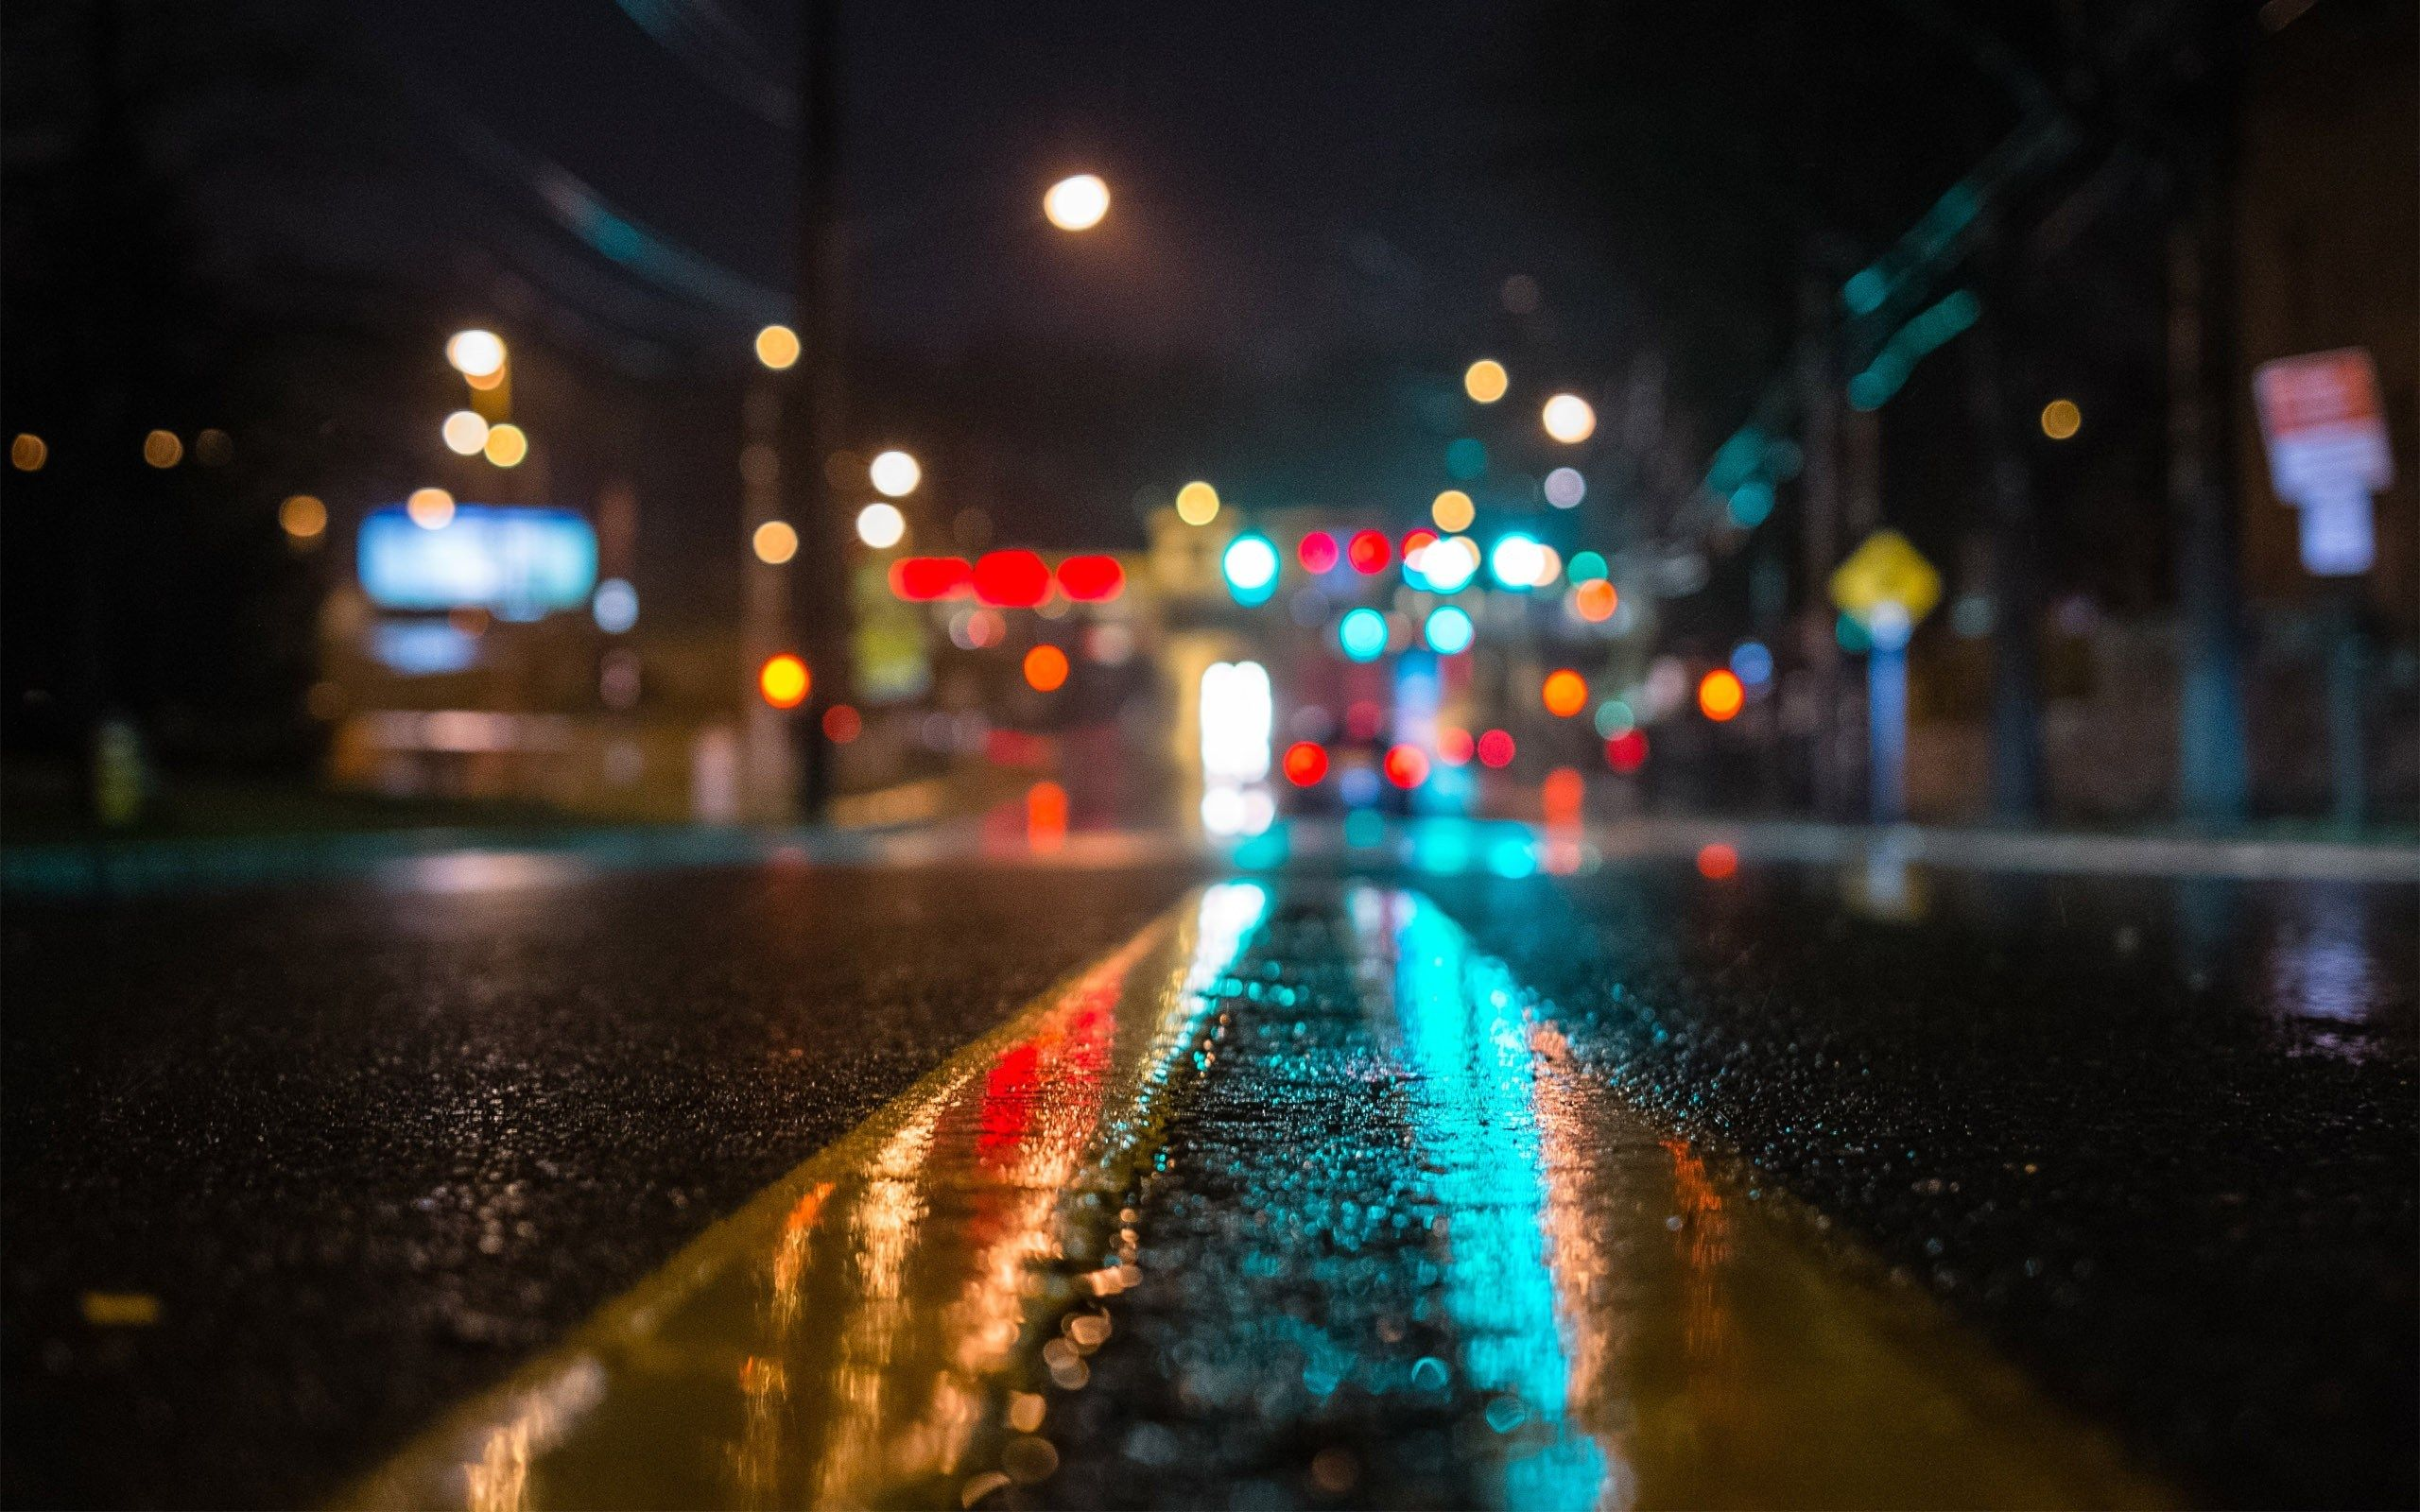 Image For Wet Road Yellow Lines Night City Wide Hd Wallpaper Photography Wallpaper Night City City Wallpaper